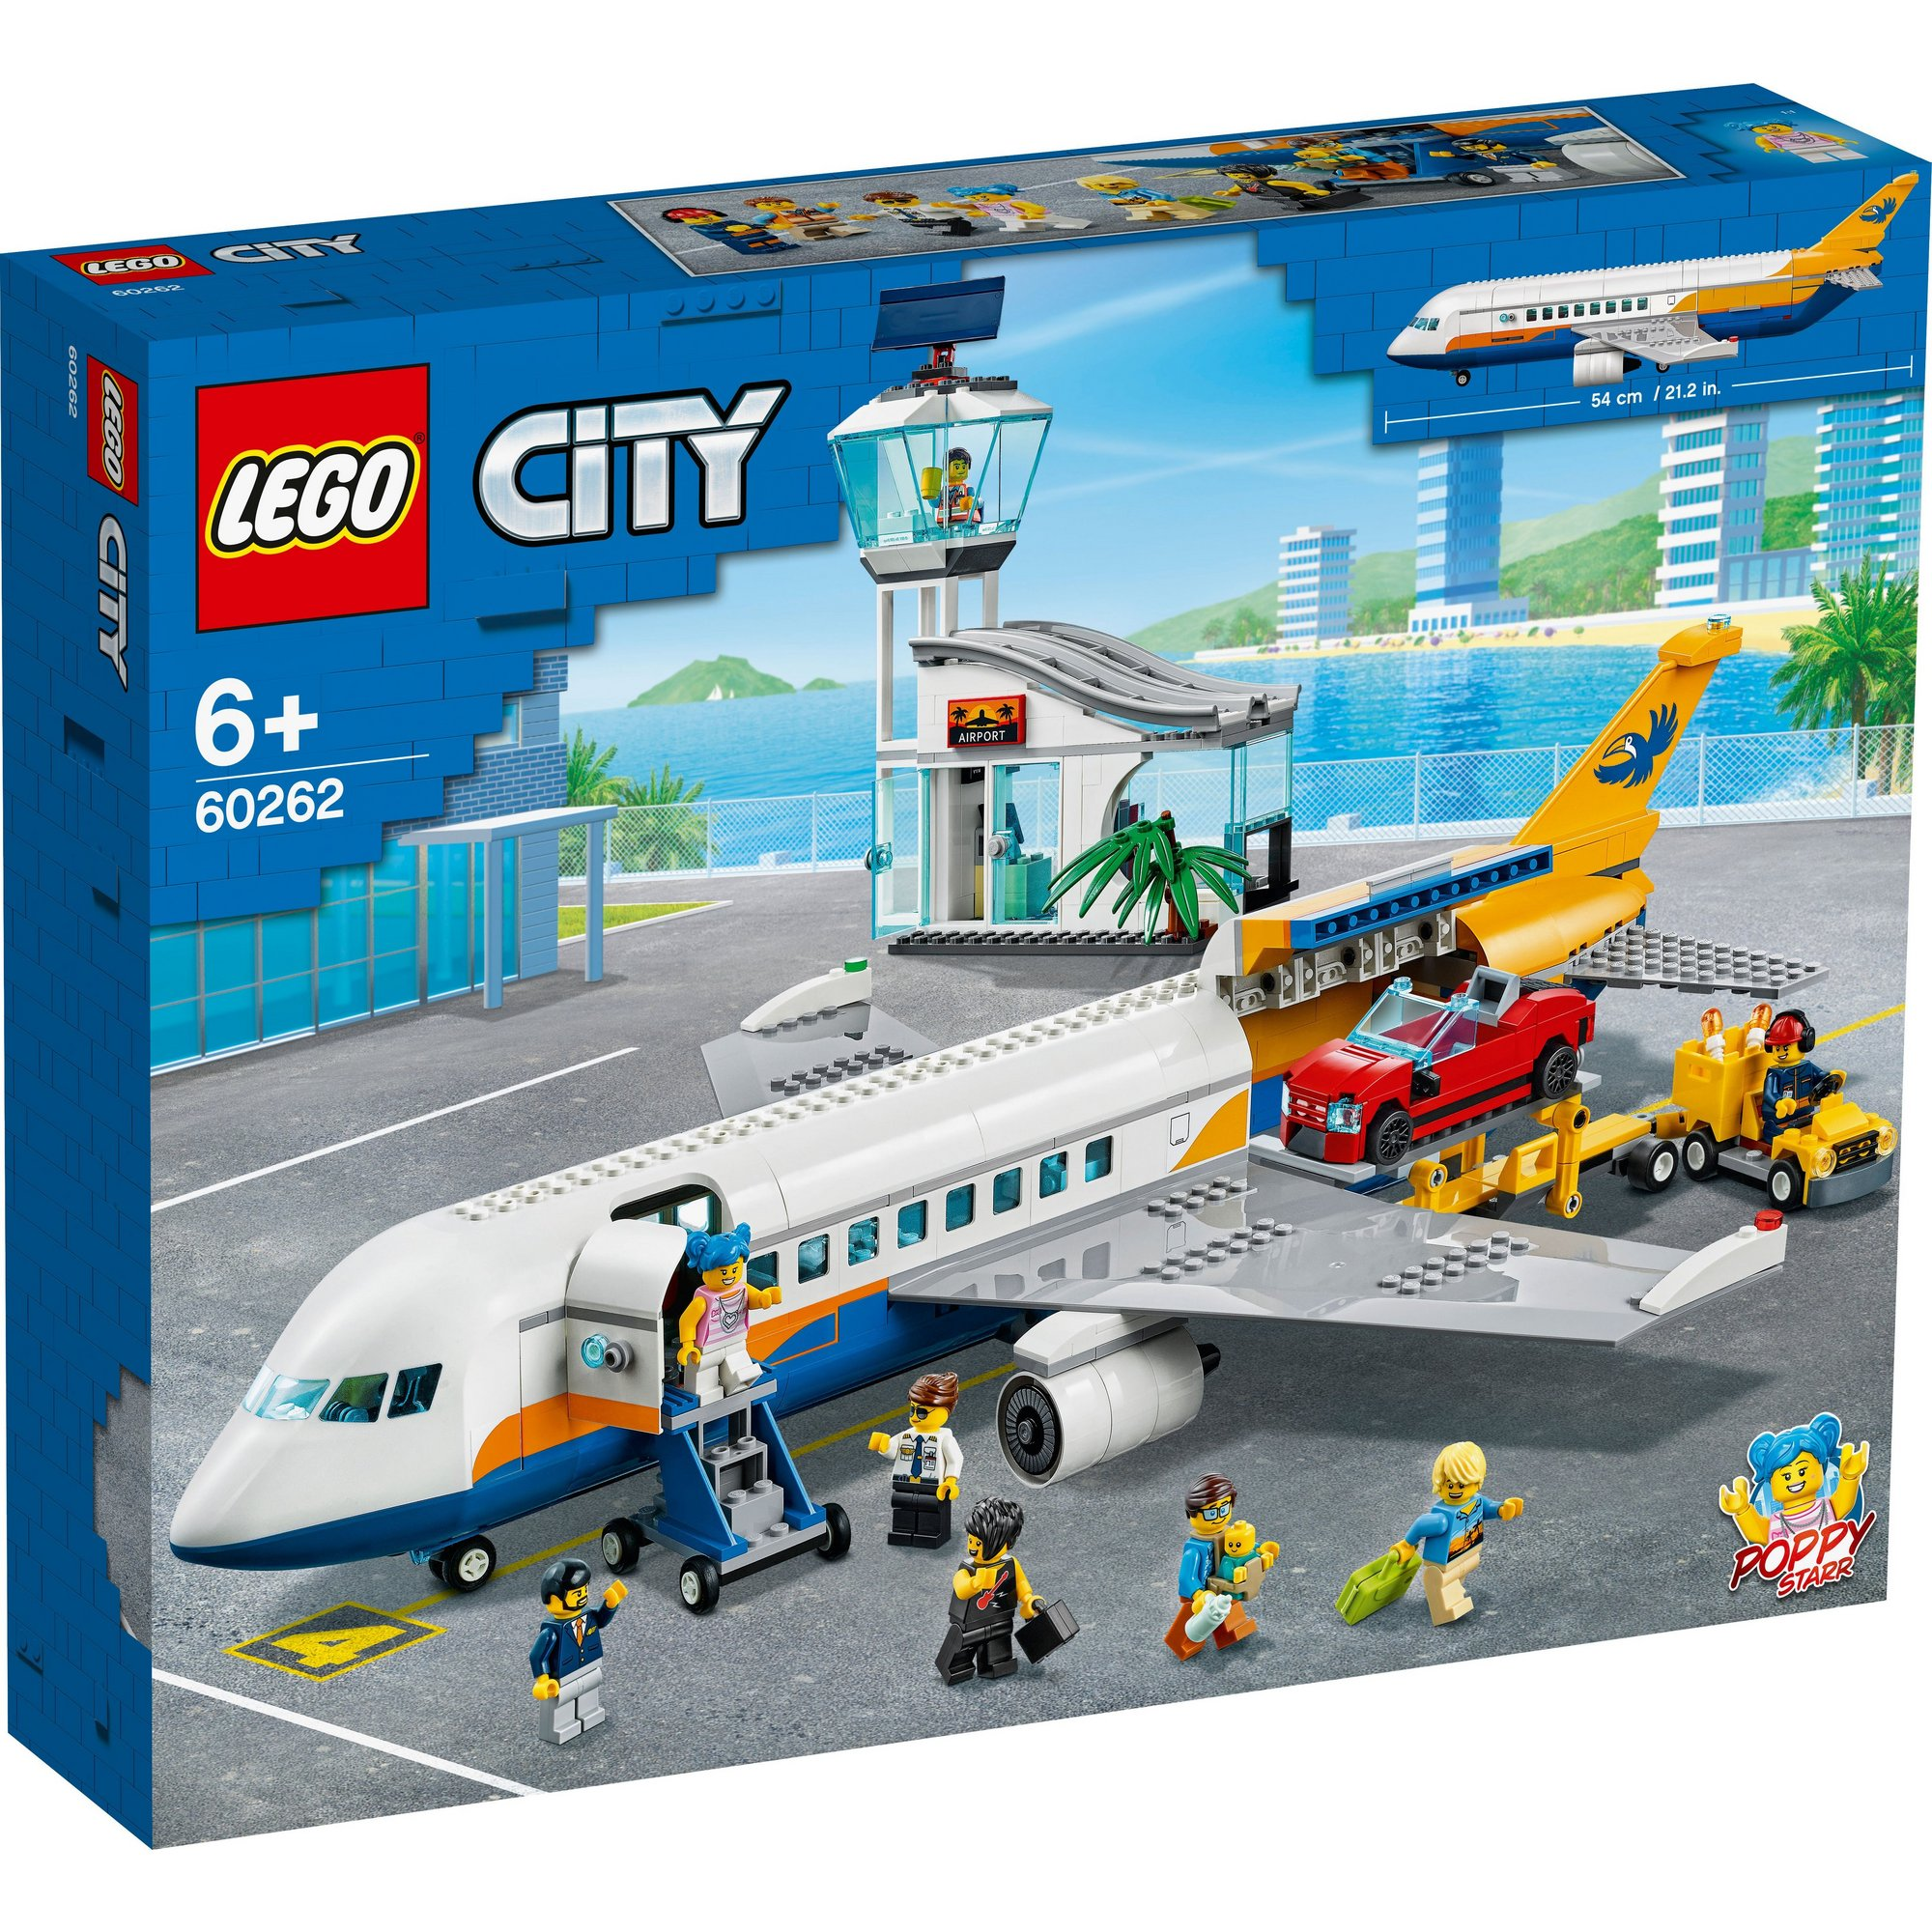 Image of LEGO City Airport Passenger Airplane